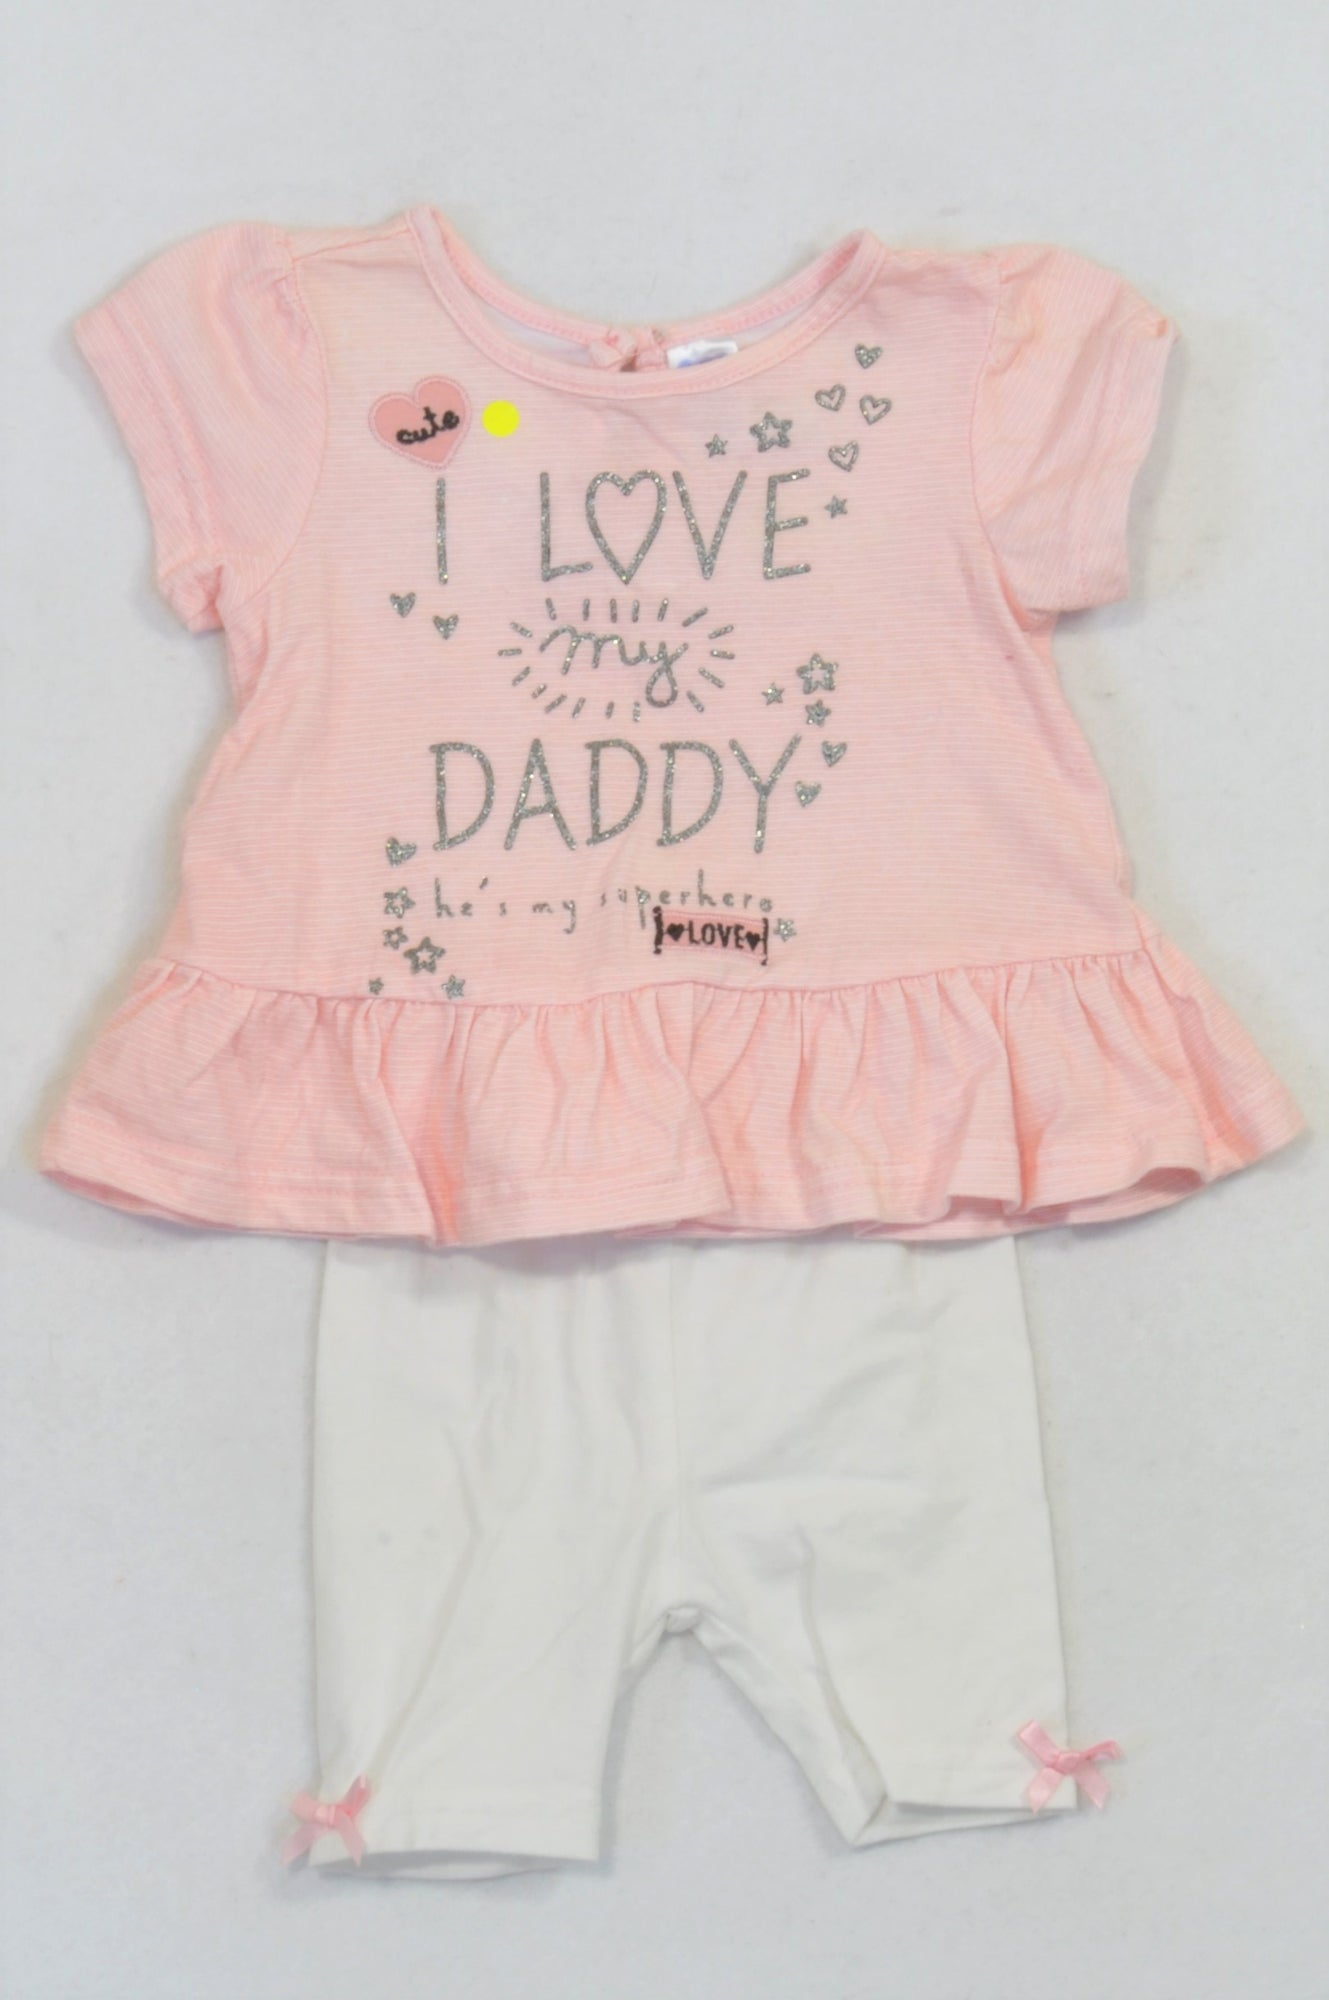 Ackermans Pink & White Peplum Love Daddy Top & White Leggings Outfit Girls 0-3 months